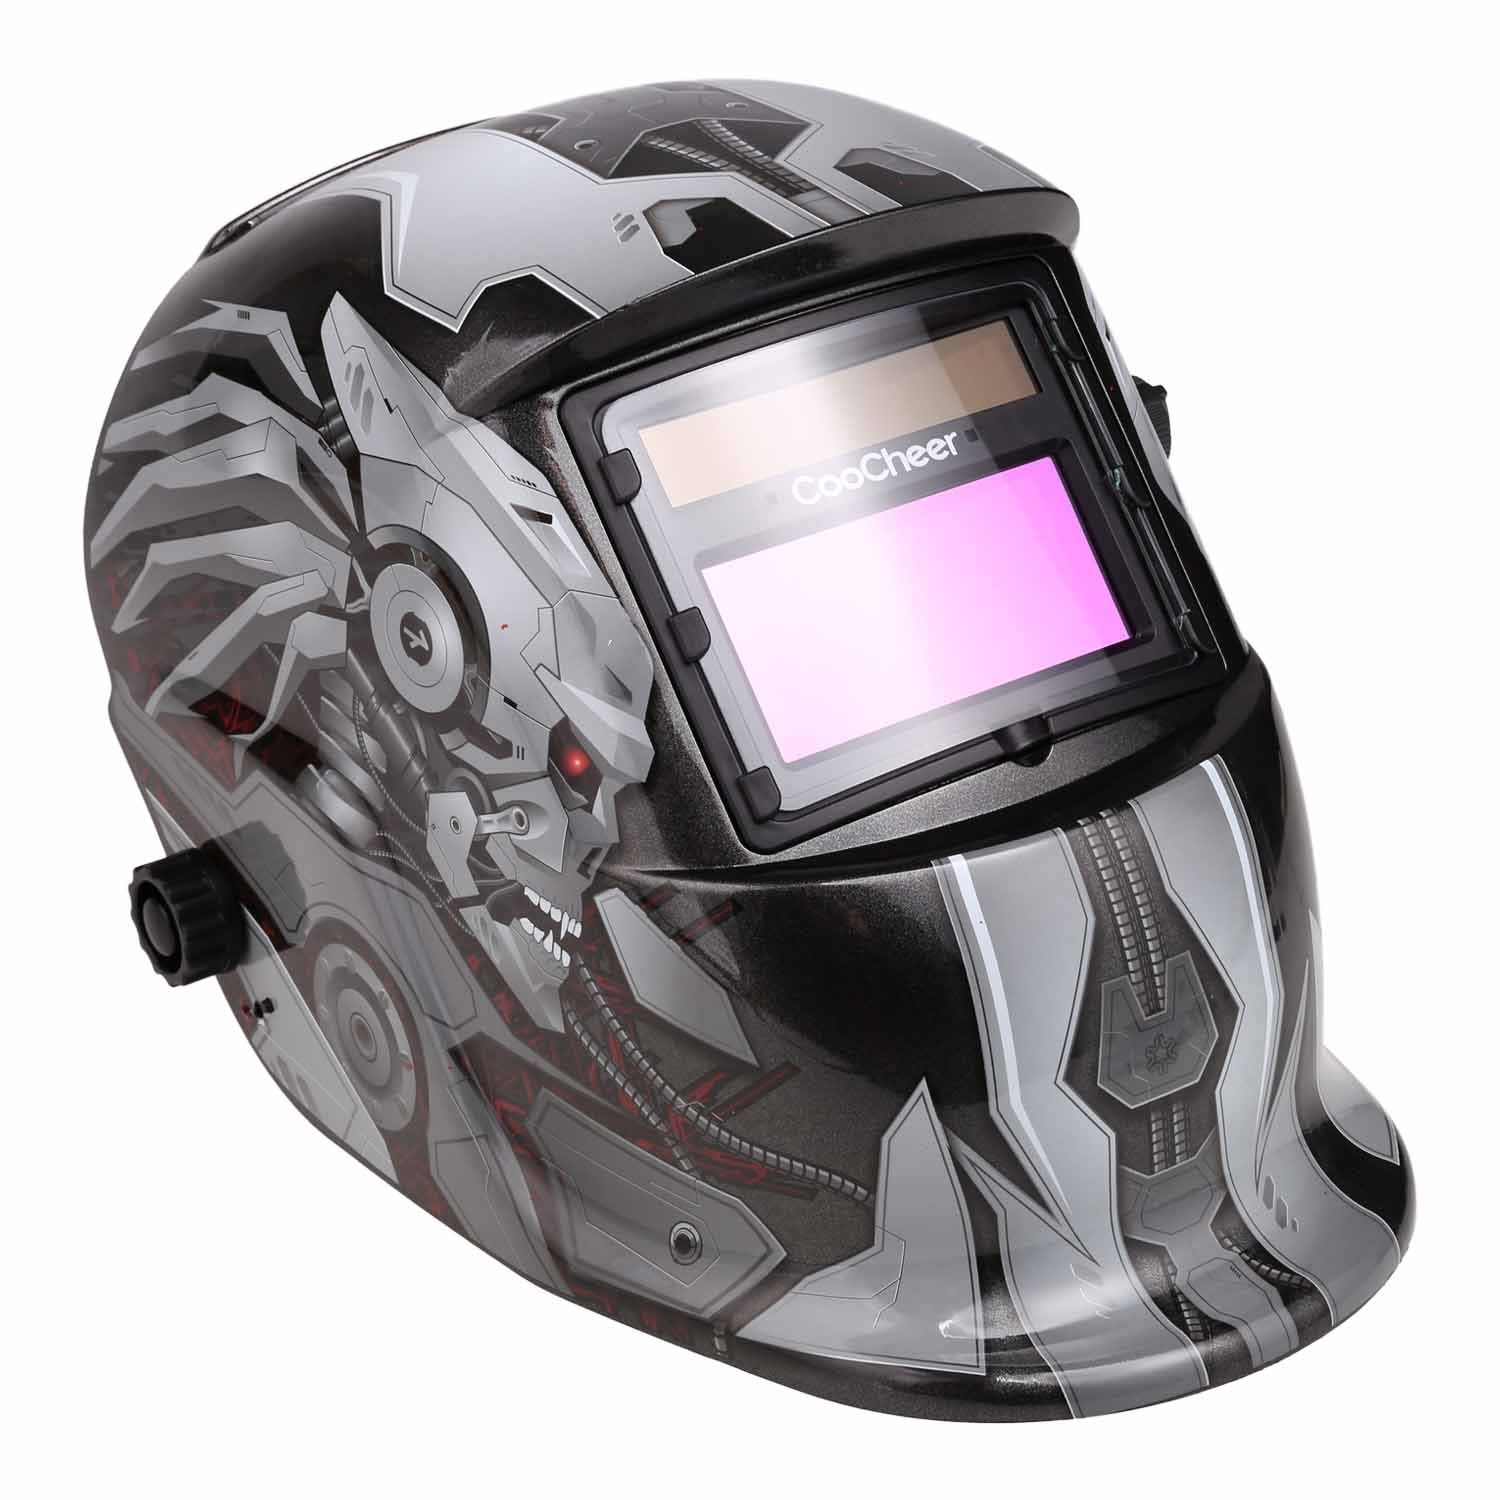 Lantusi Auto-darkening Welding Helmet with Personalized Pattern Professional Protected Solar Power Arc by Lantusi